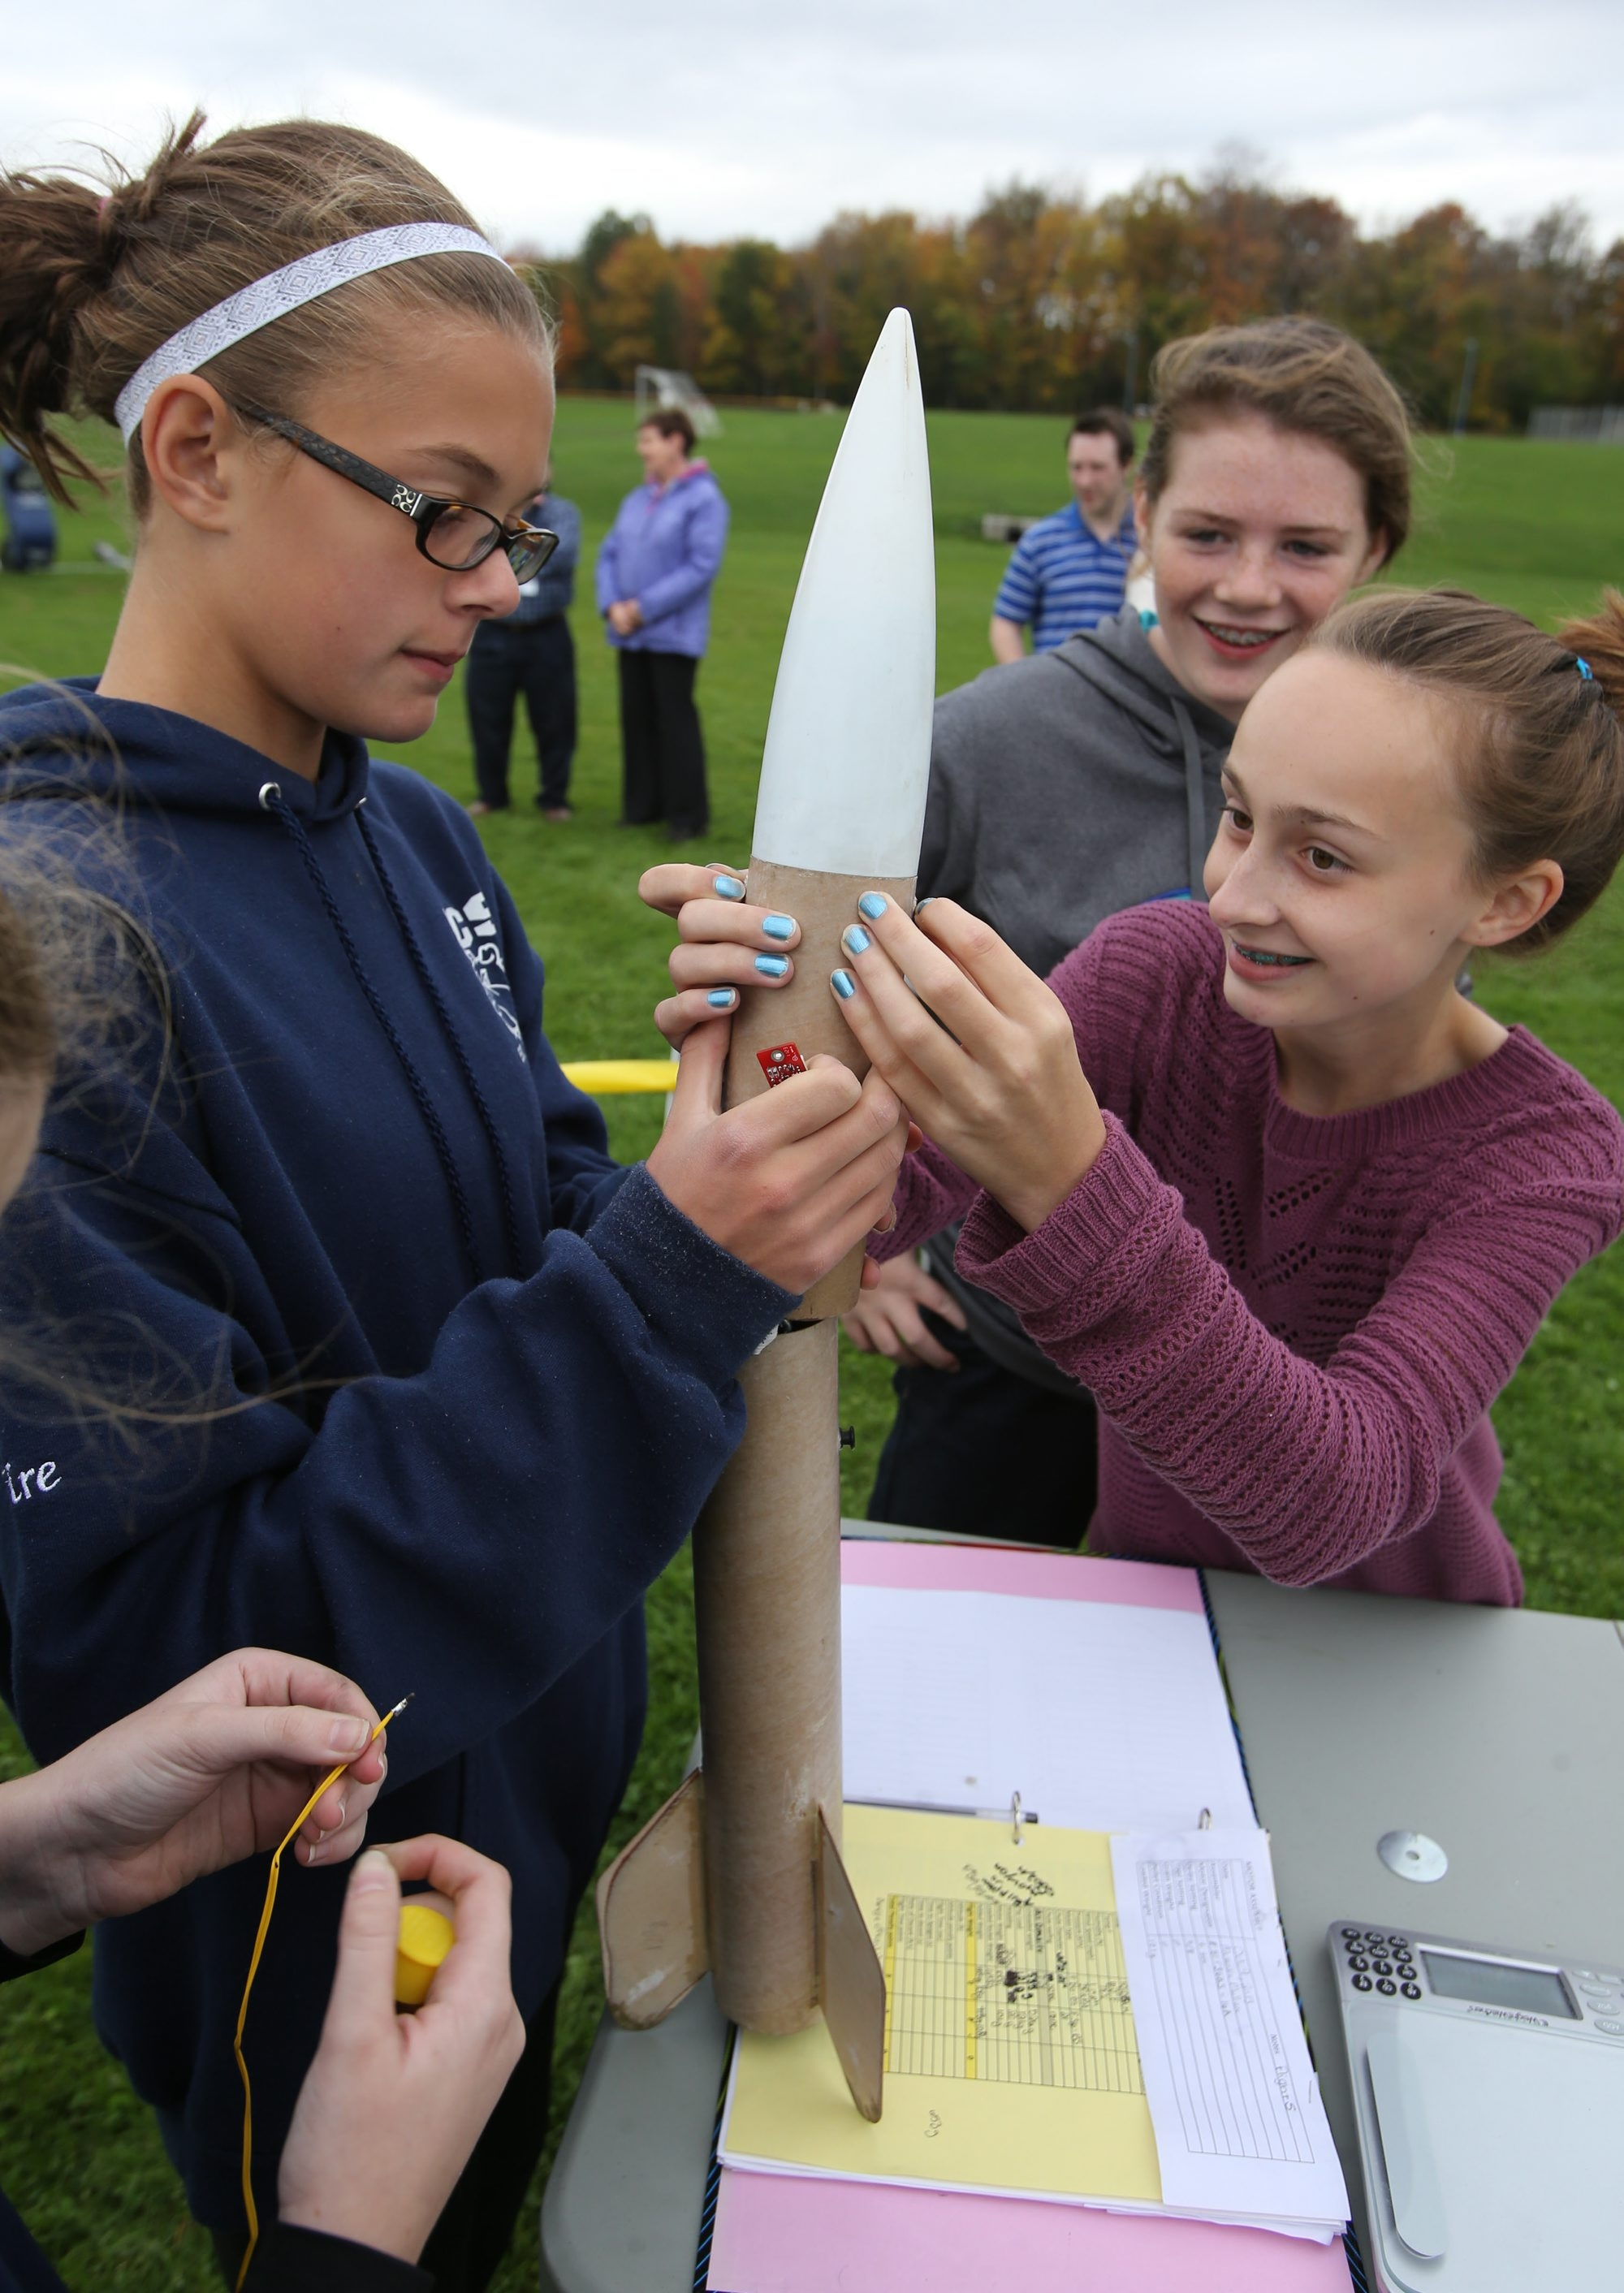 Claire Zwack,  left, and Grace Brach of Immaculate Conception School assemble a rocket during preparation for the Team America Rocketry Challenge on Sunday.